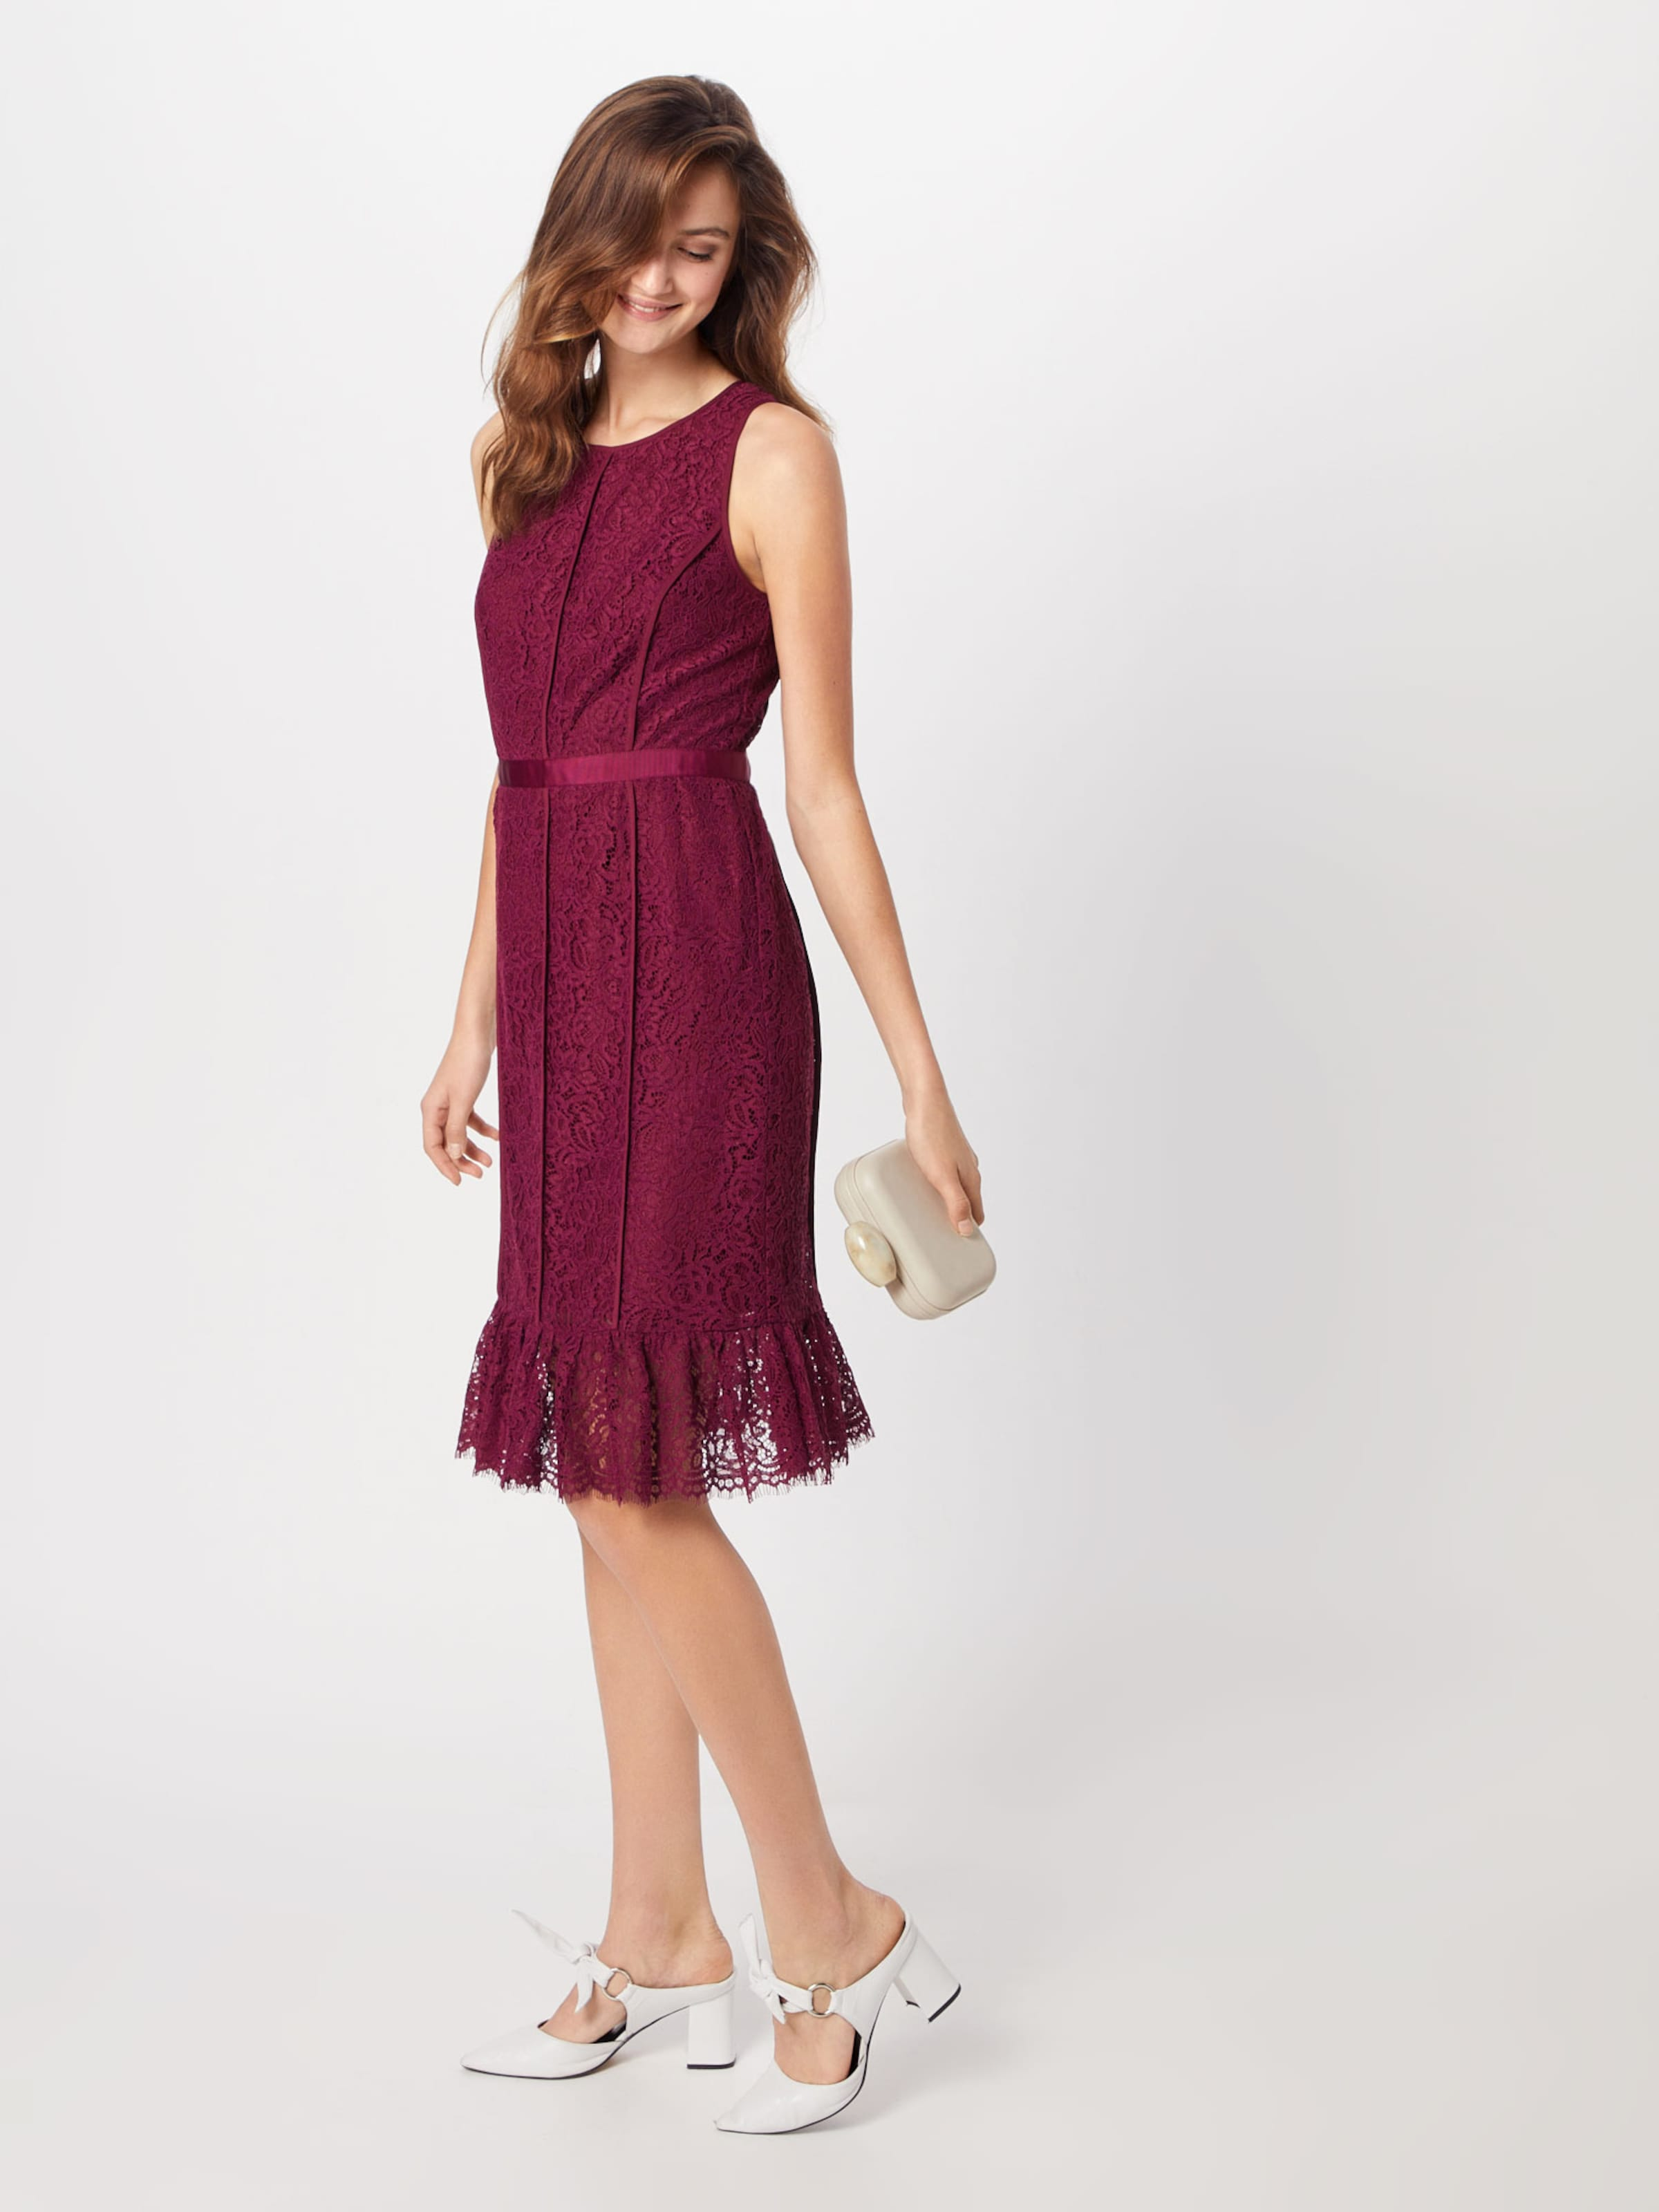 Banana Republic 'sl Dress' Robe En Racer Lace Bourgogne CWxrdBoeEQ